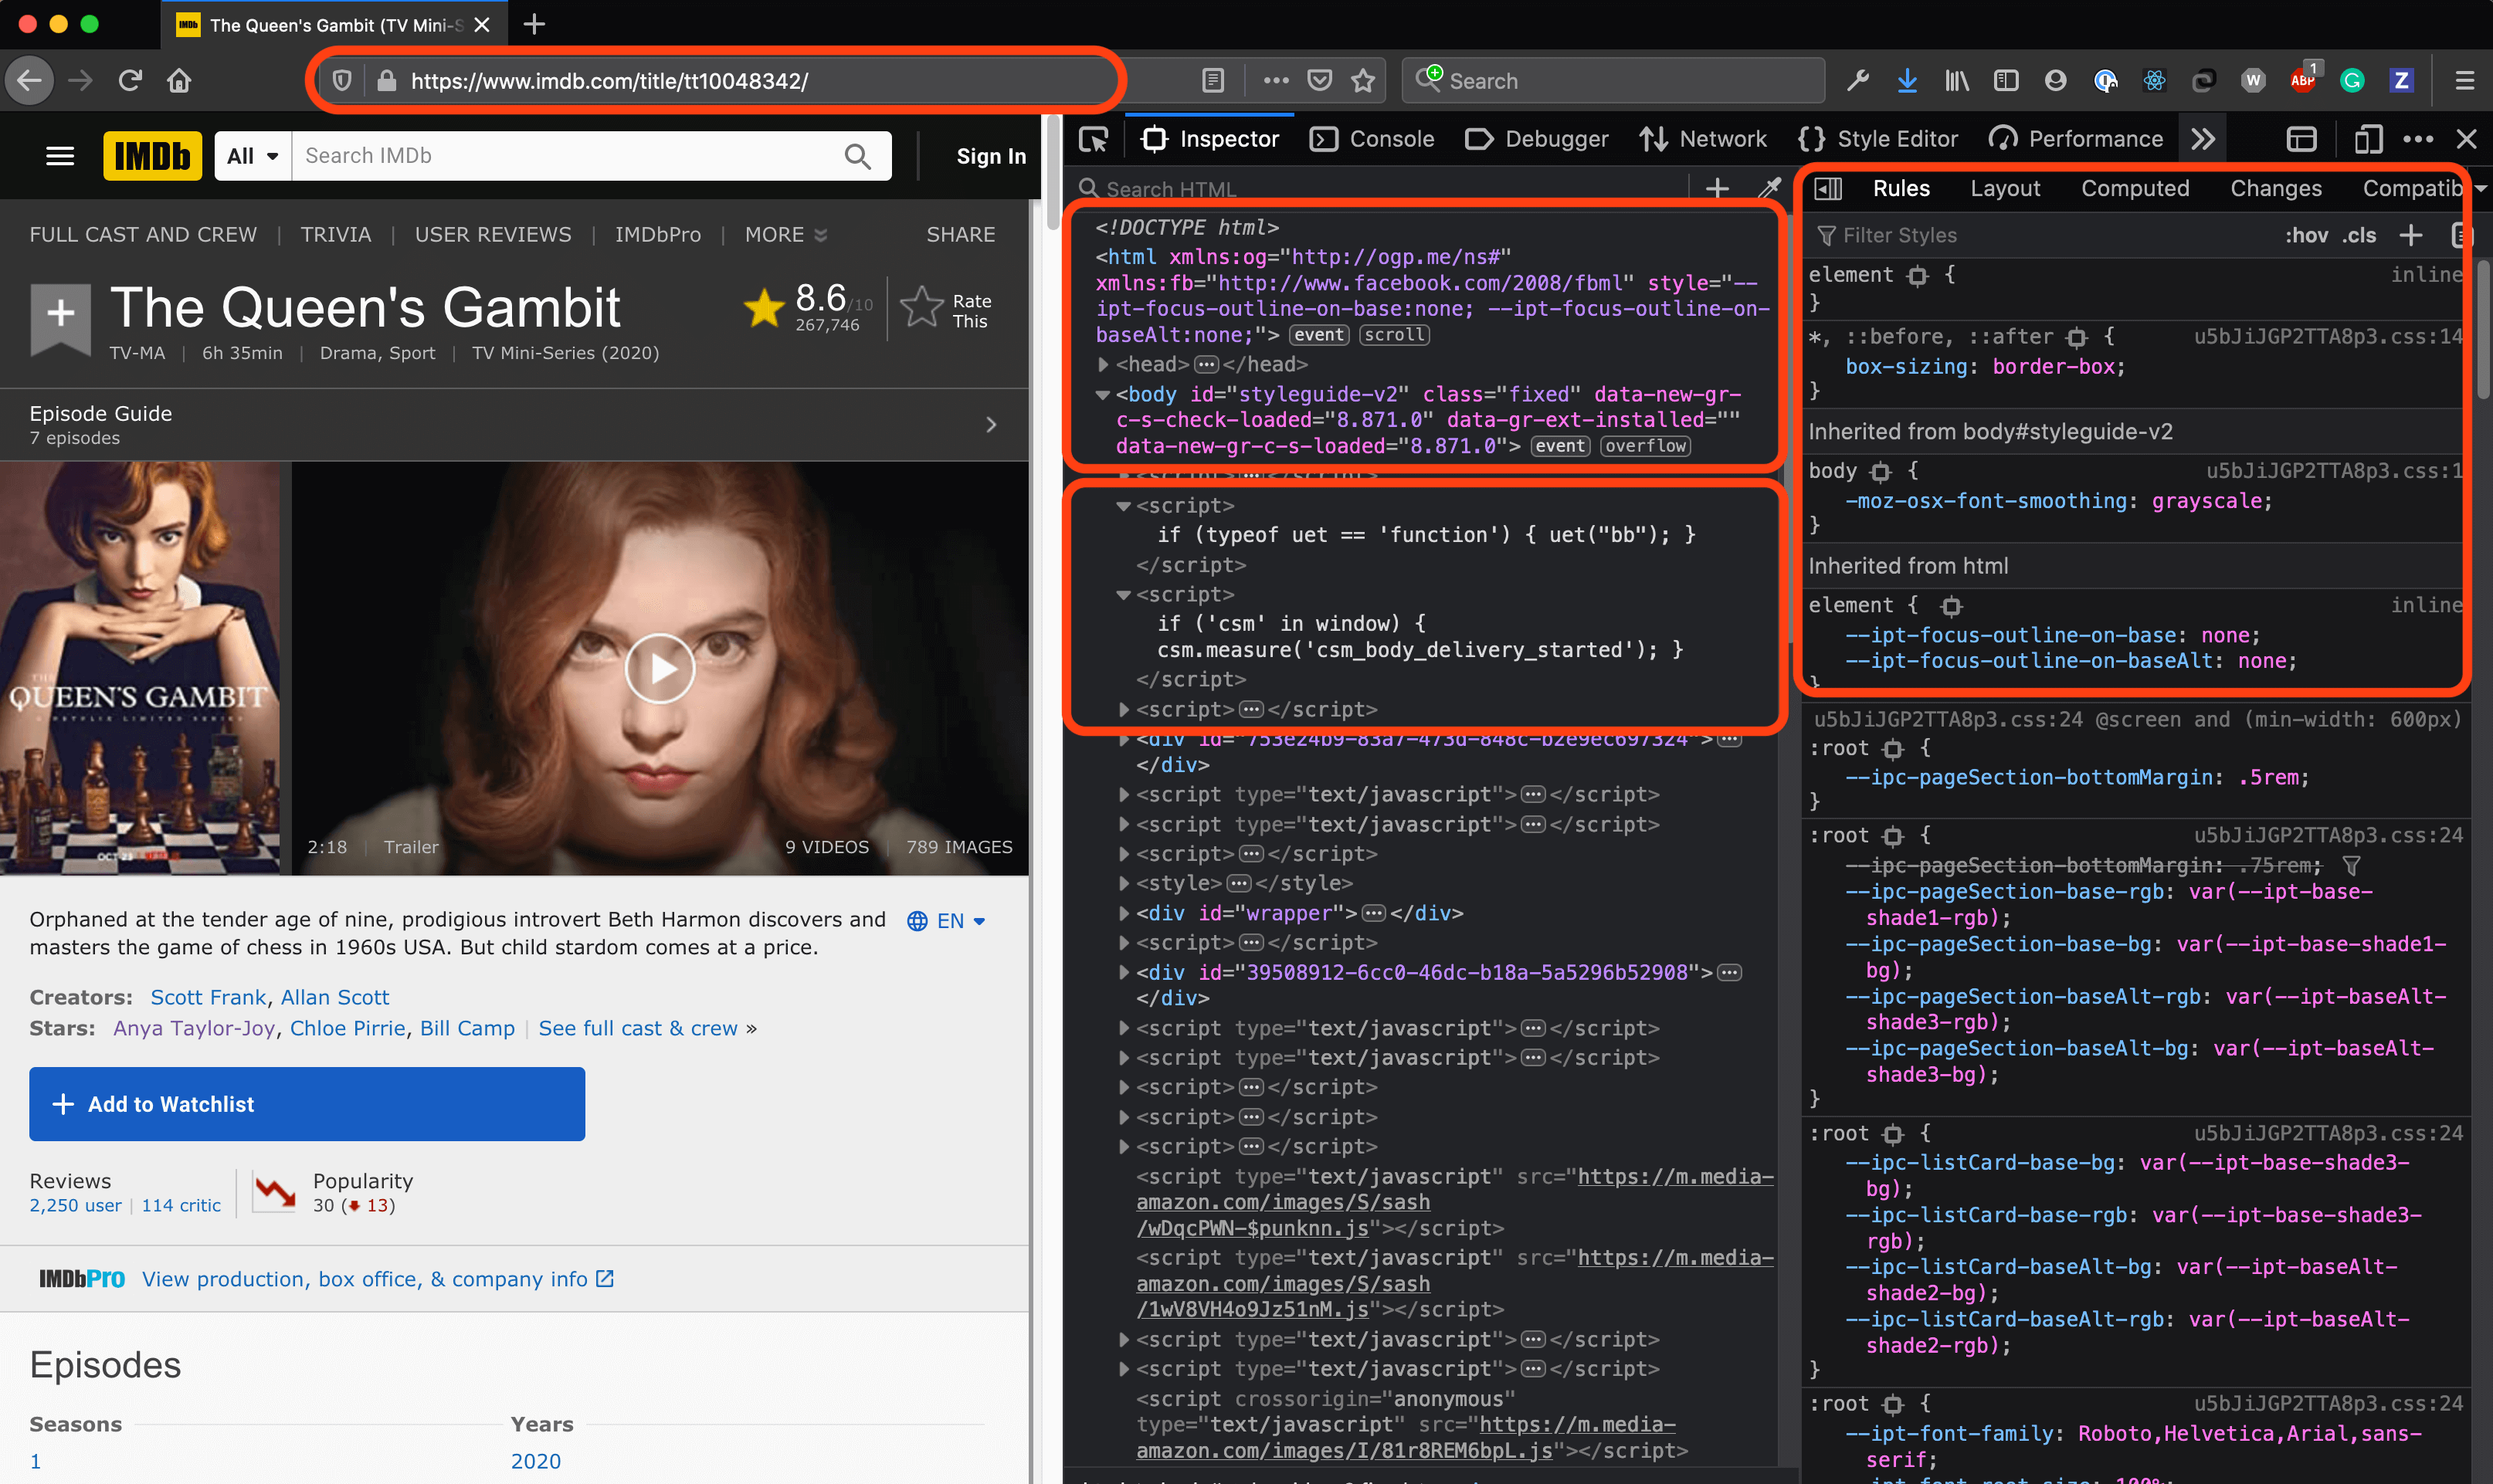 An example of a browser's developer tools